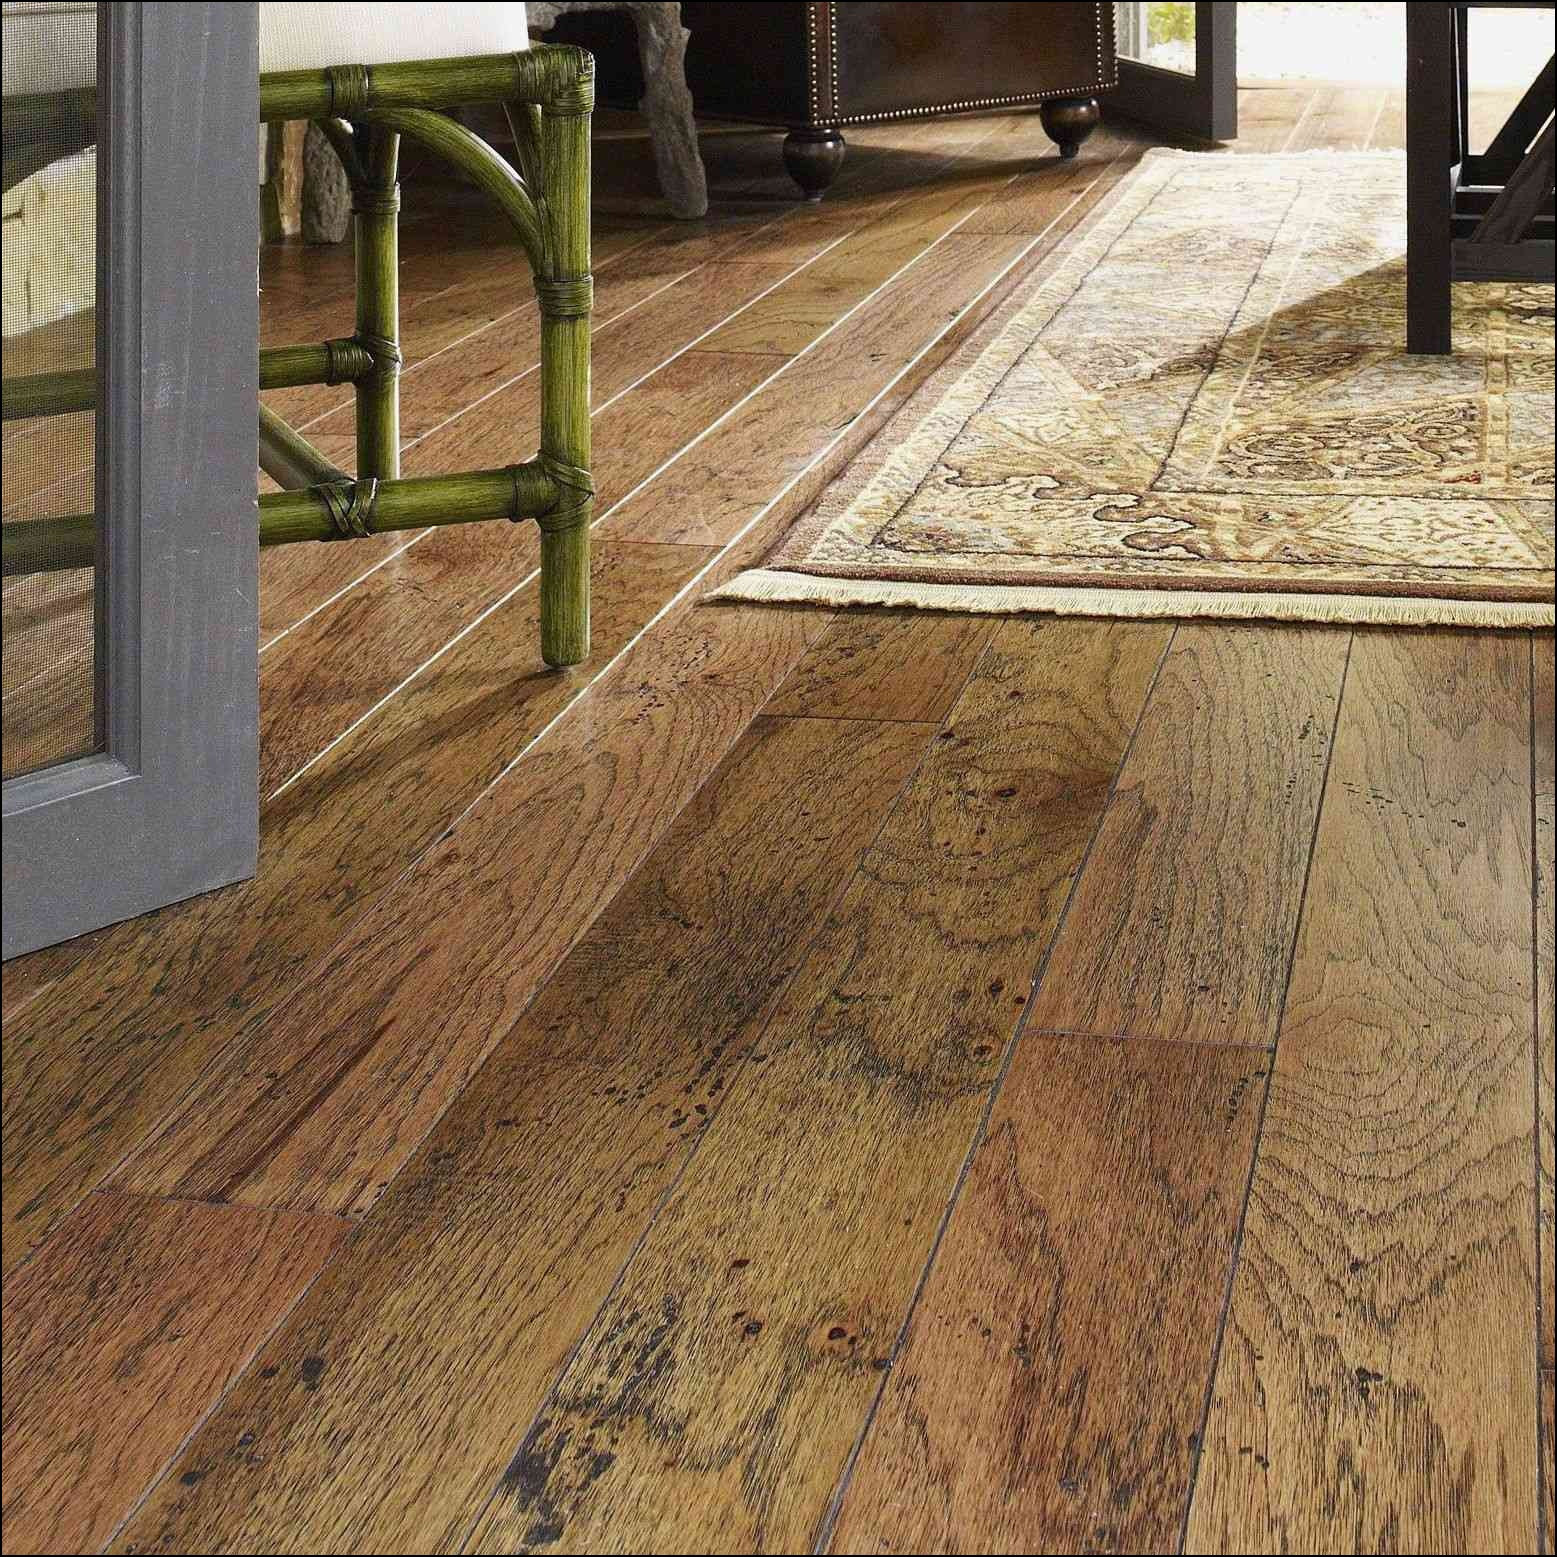 hardwood floor refinishing nashville of wide plank flooring ideas with regard to wide plank dark wood flooring images best type wood flooring best floor floor wood floor wood